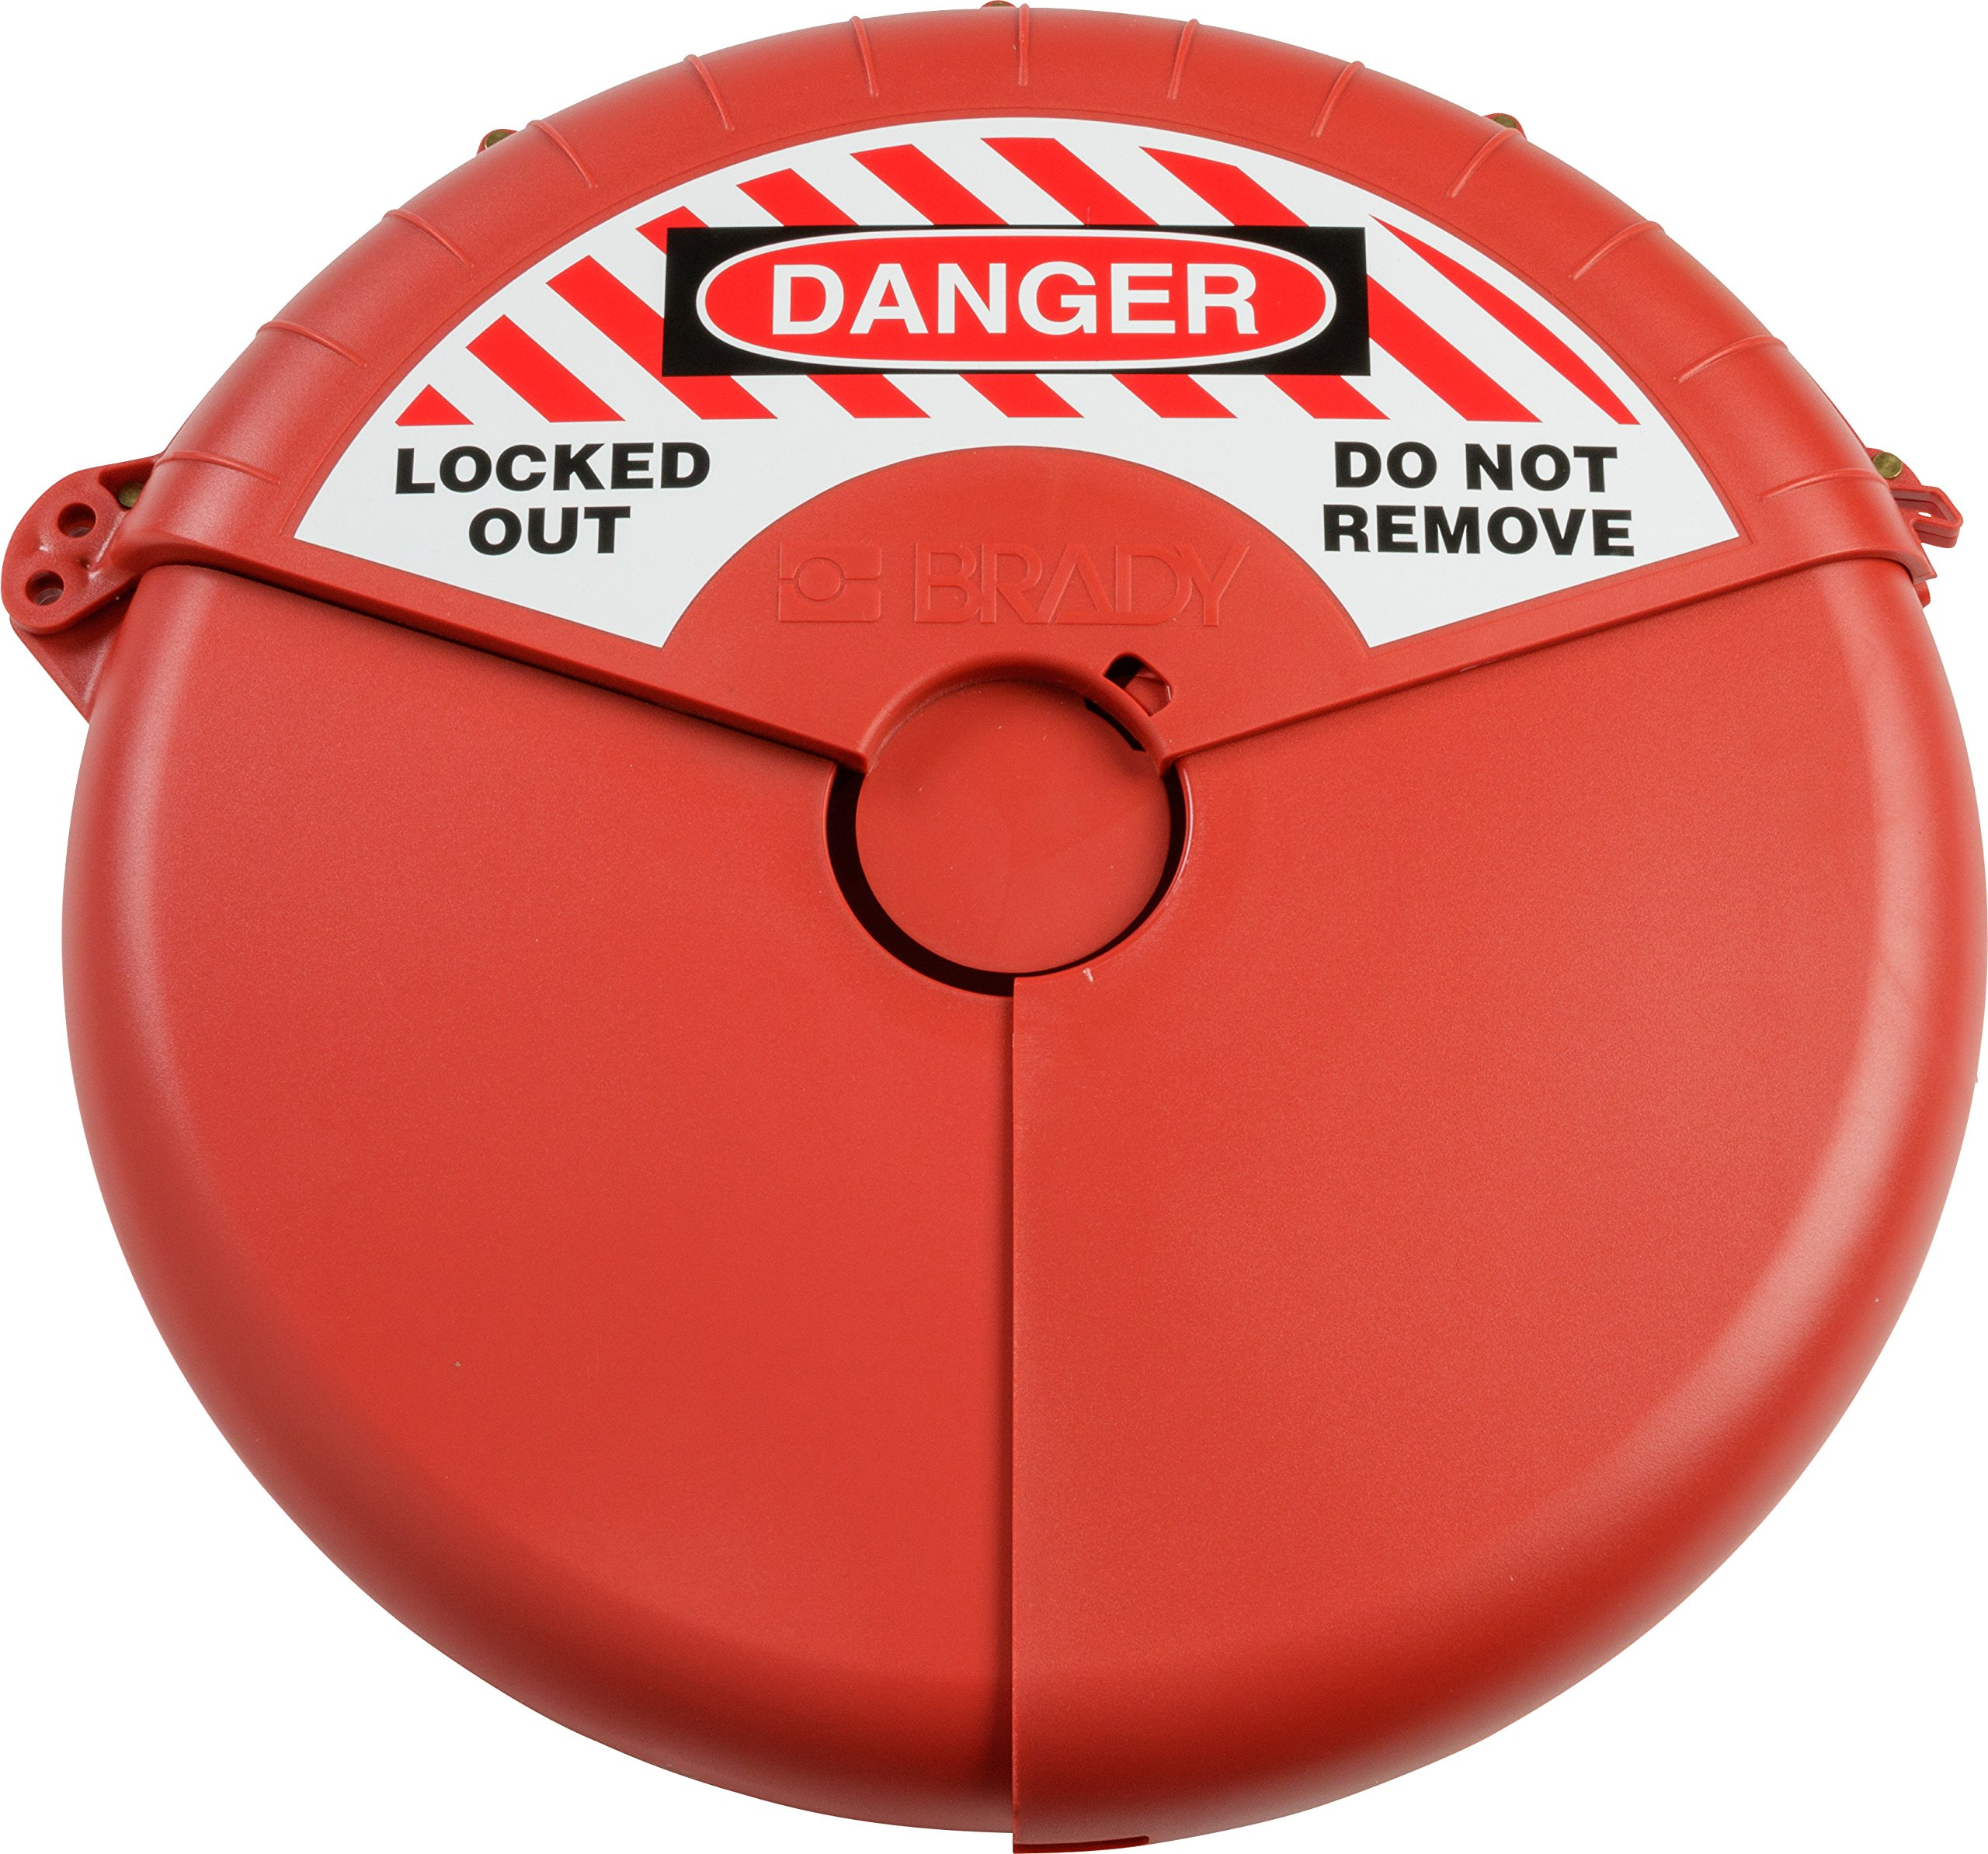 Brady Collapsible Gate Valve Lockout Device - Compatible with Gate Valves 13-18'' in Diameter - Red - 148646